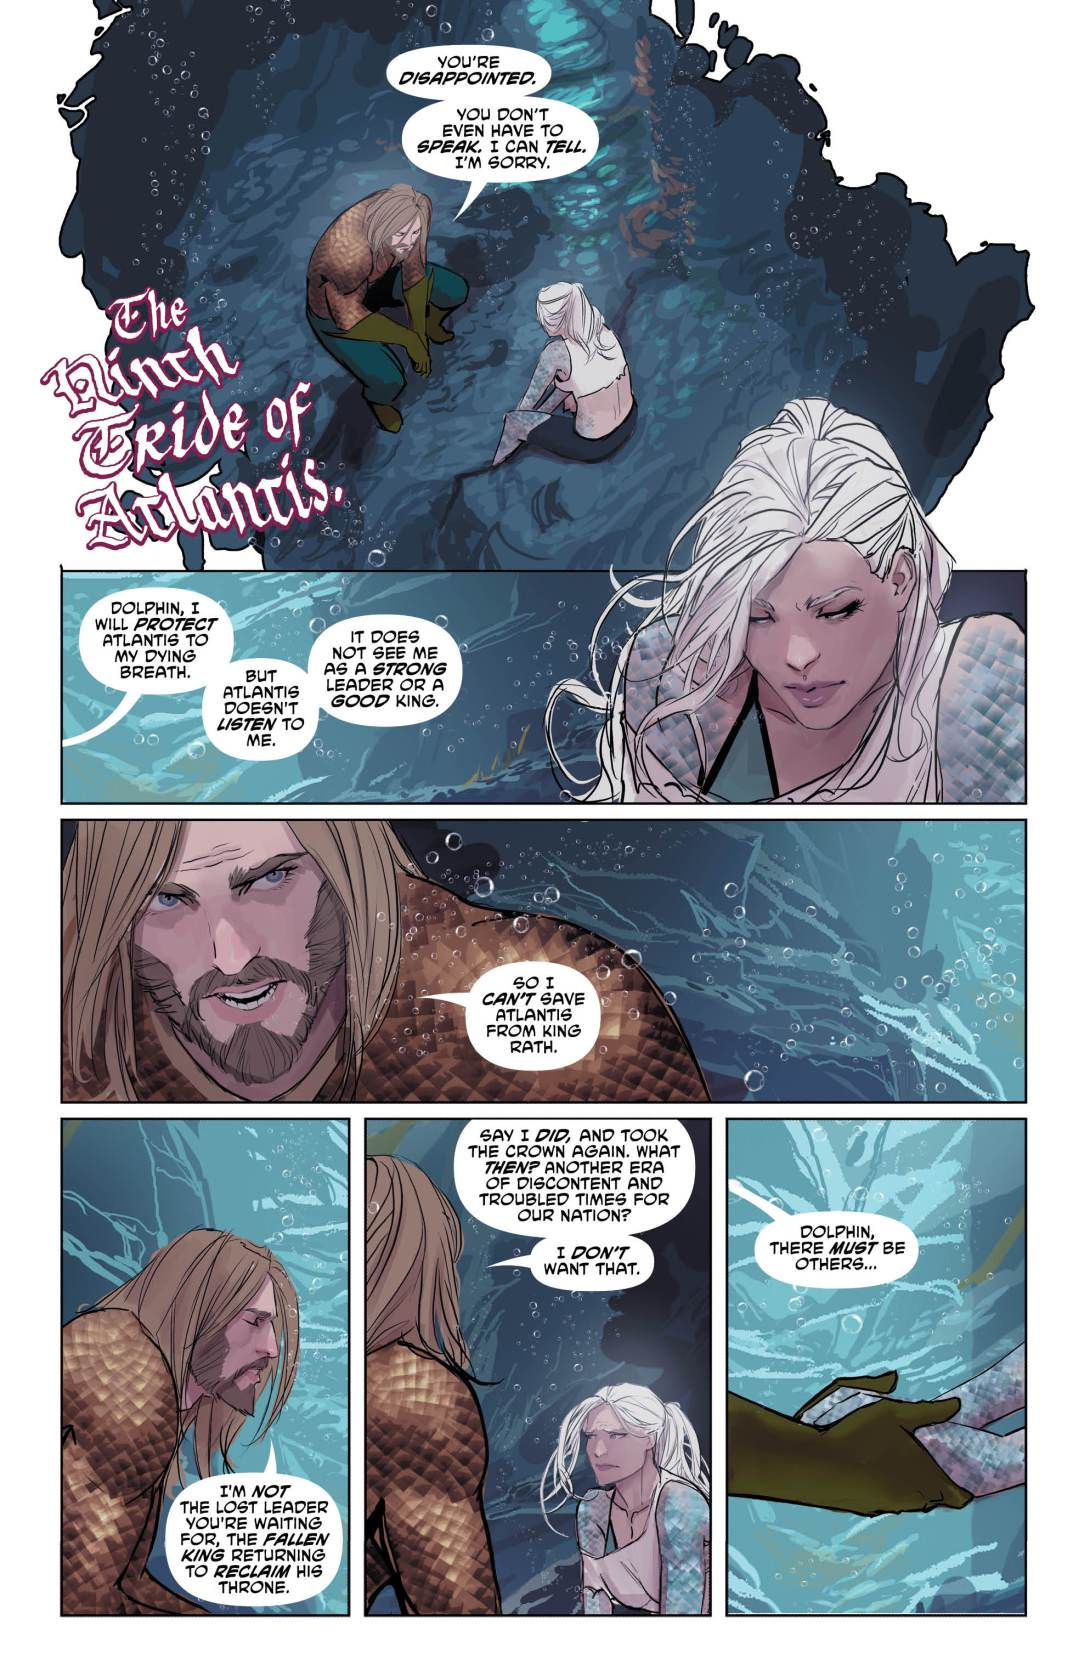 Aquaman 29.1 - DC Comics News